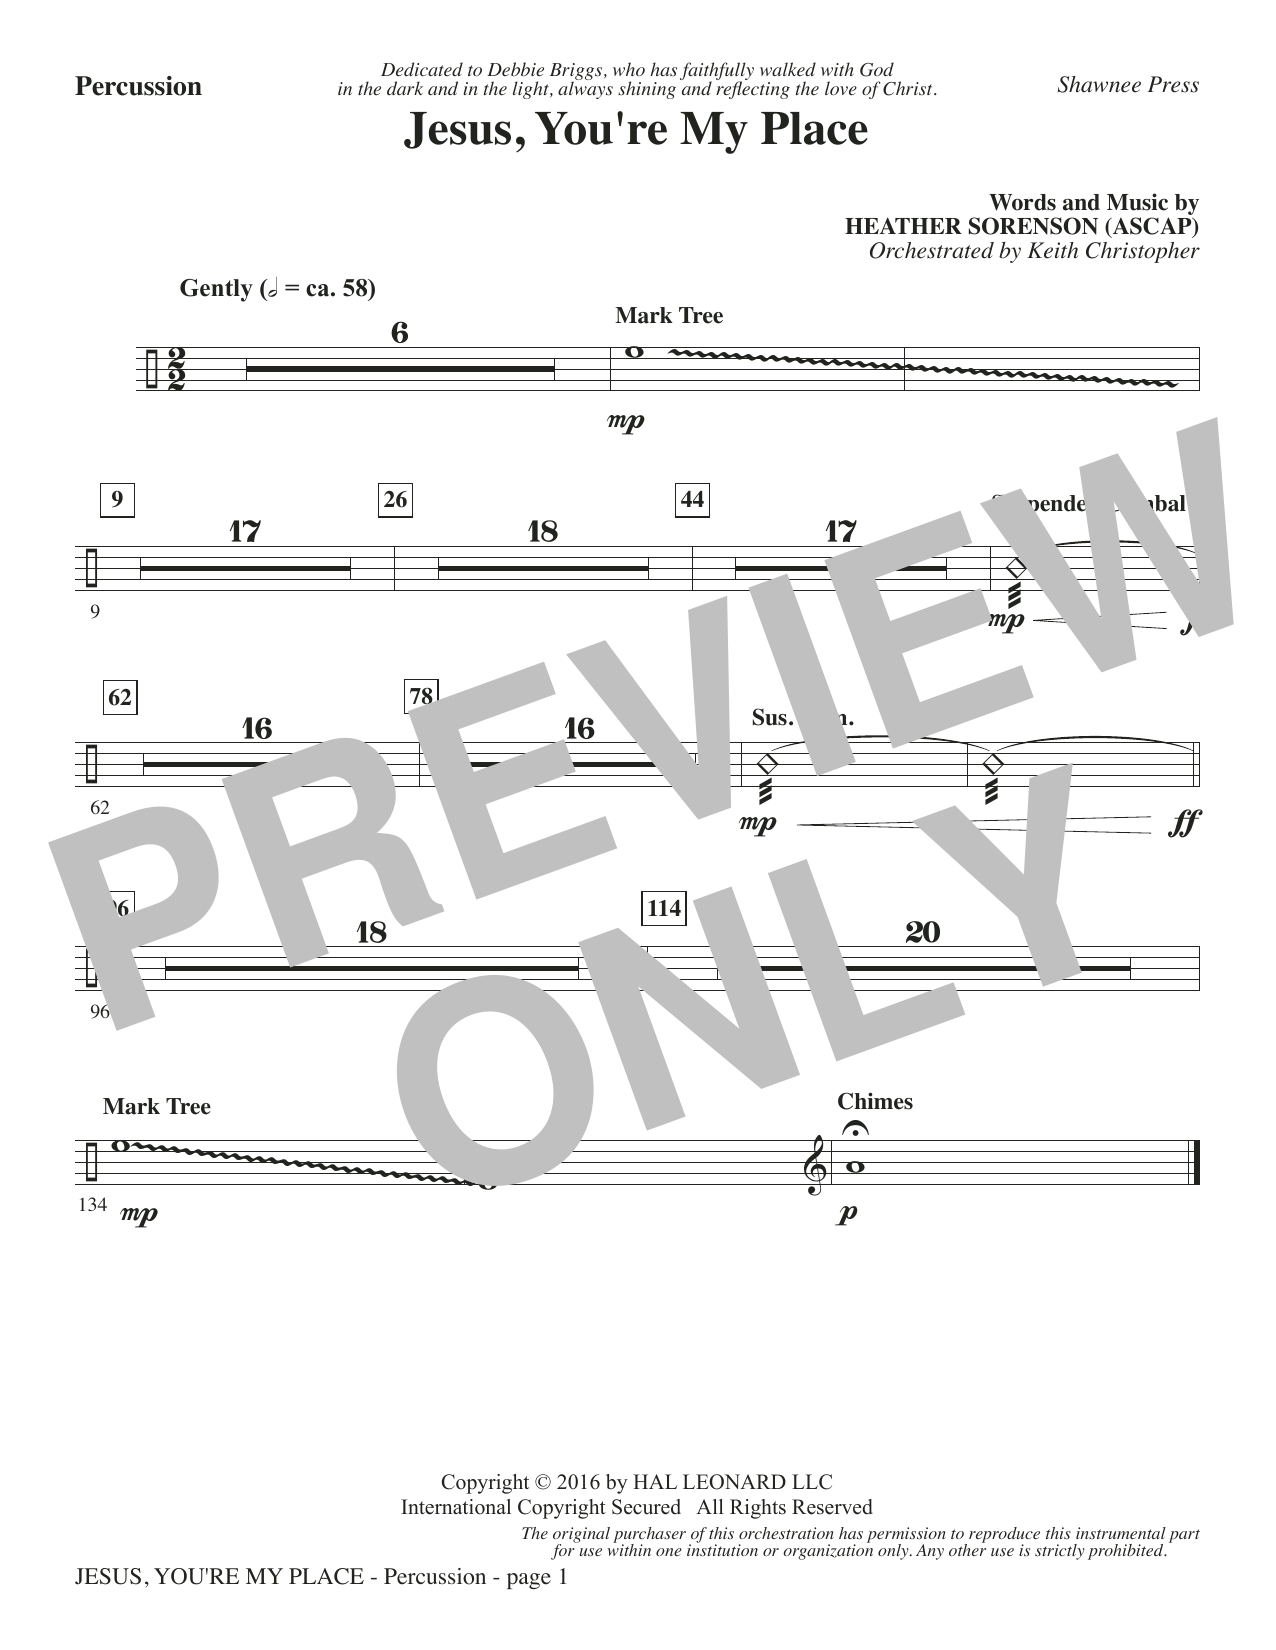 Jesus, You're My Place - Percussion Sheet Music